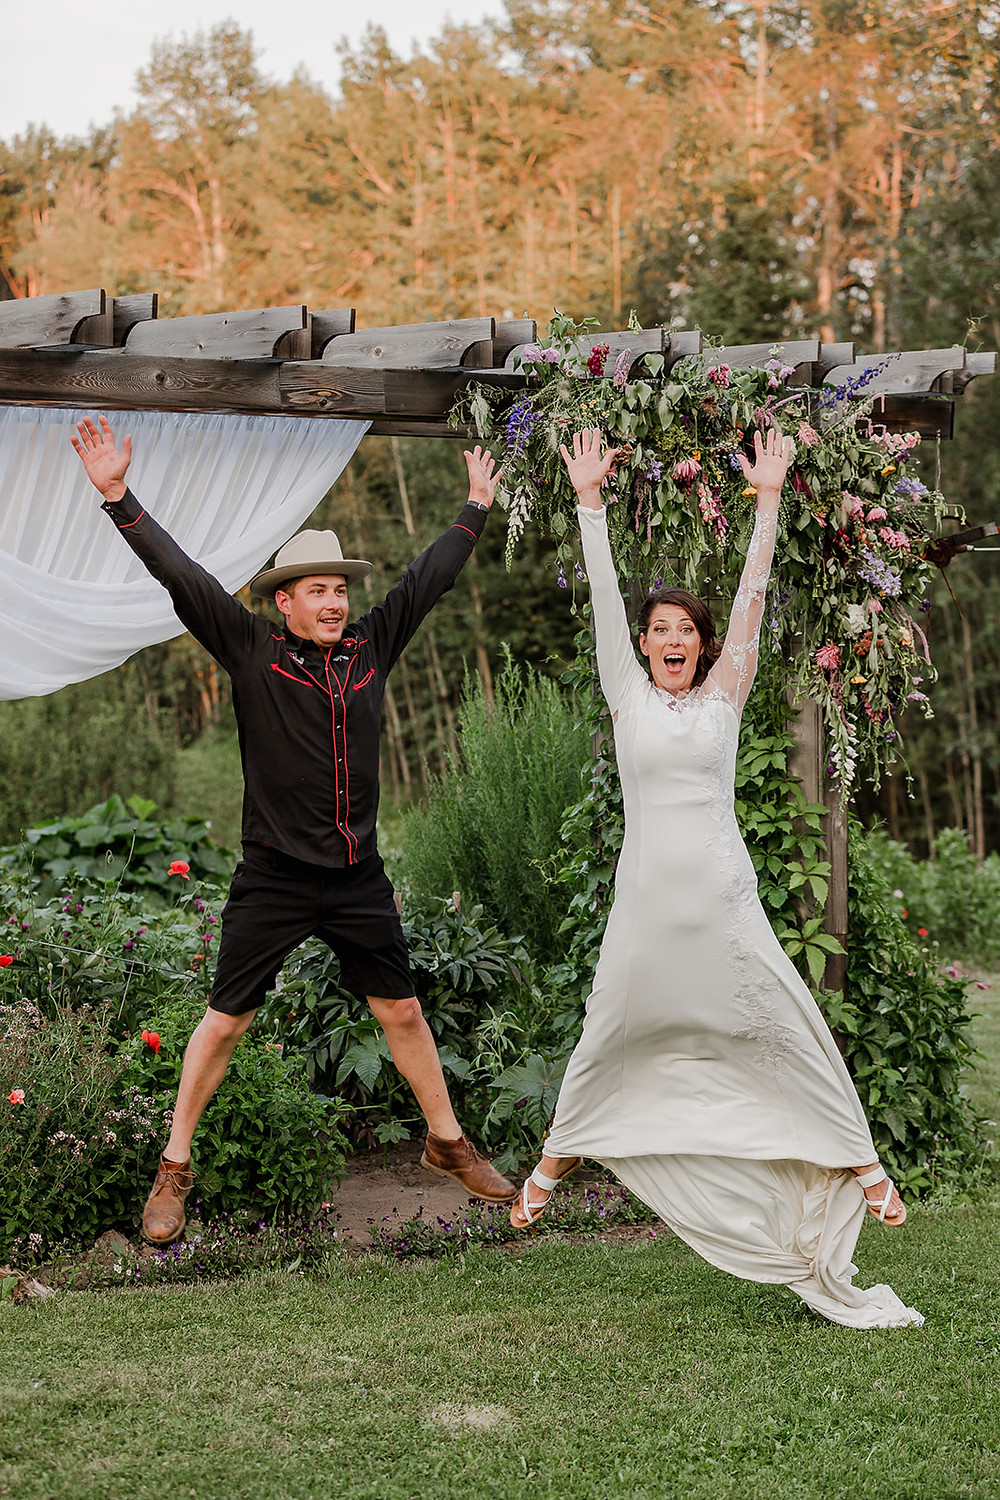 Bride and Brother, Happy Wedding Photos, Funny Family Photos